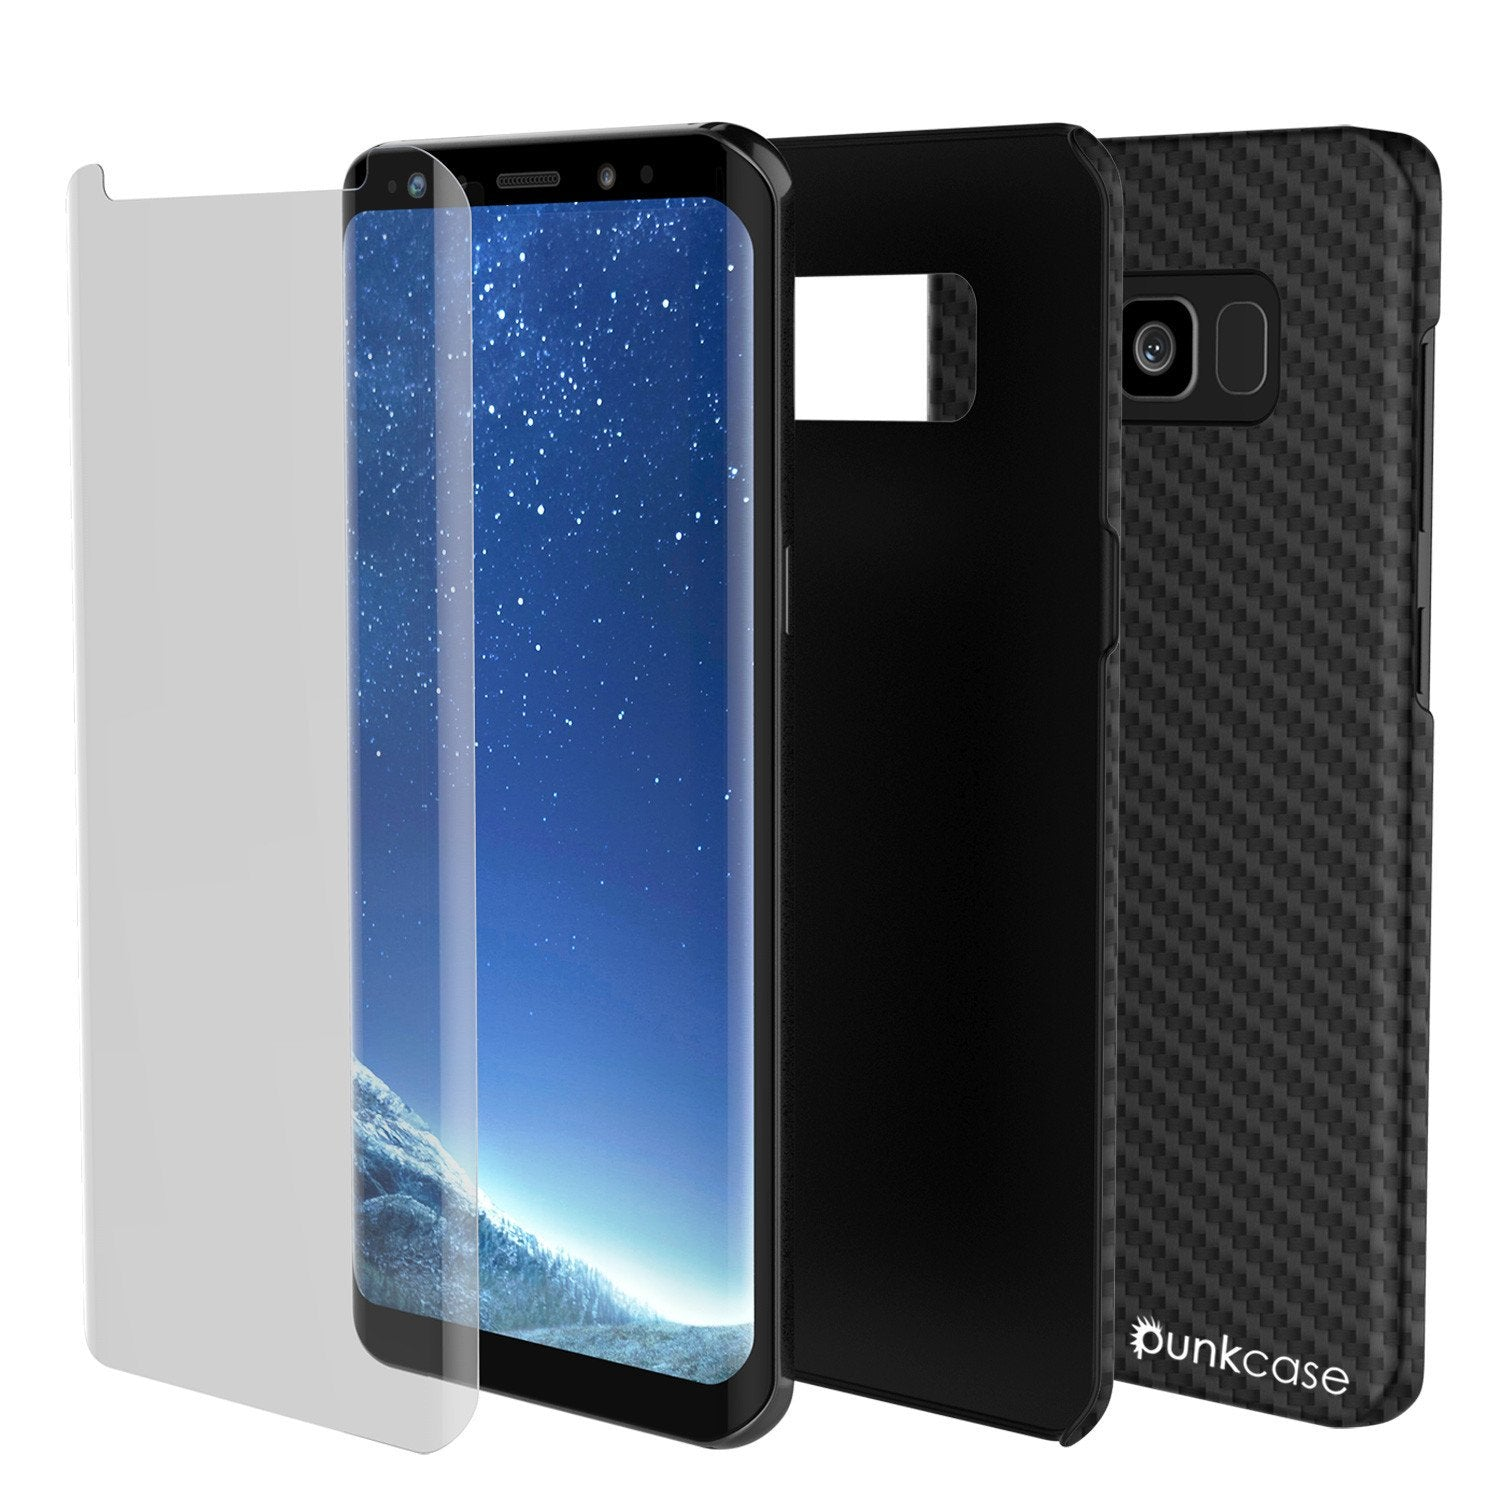 Galaxy S8 Plus Case, PunkCase CarbonShield, Jet Black - PunkCase NZ